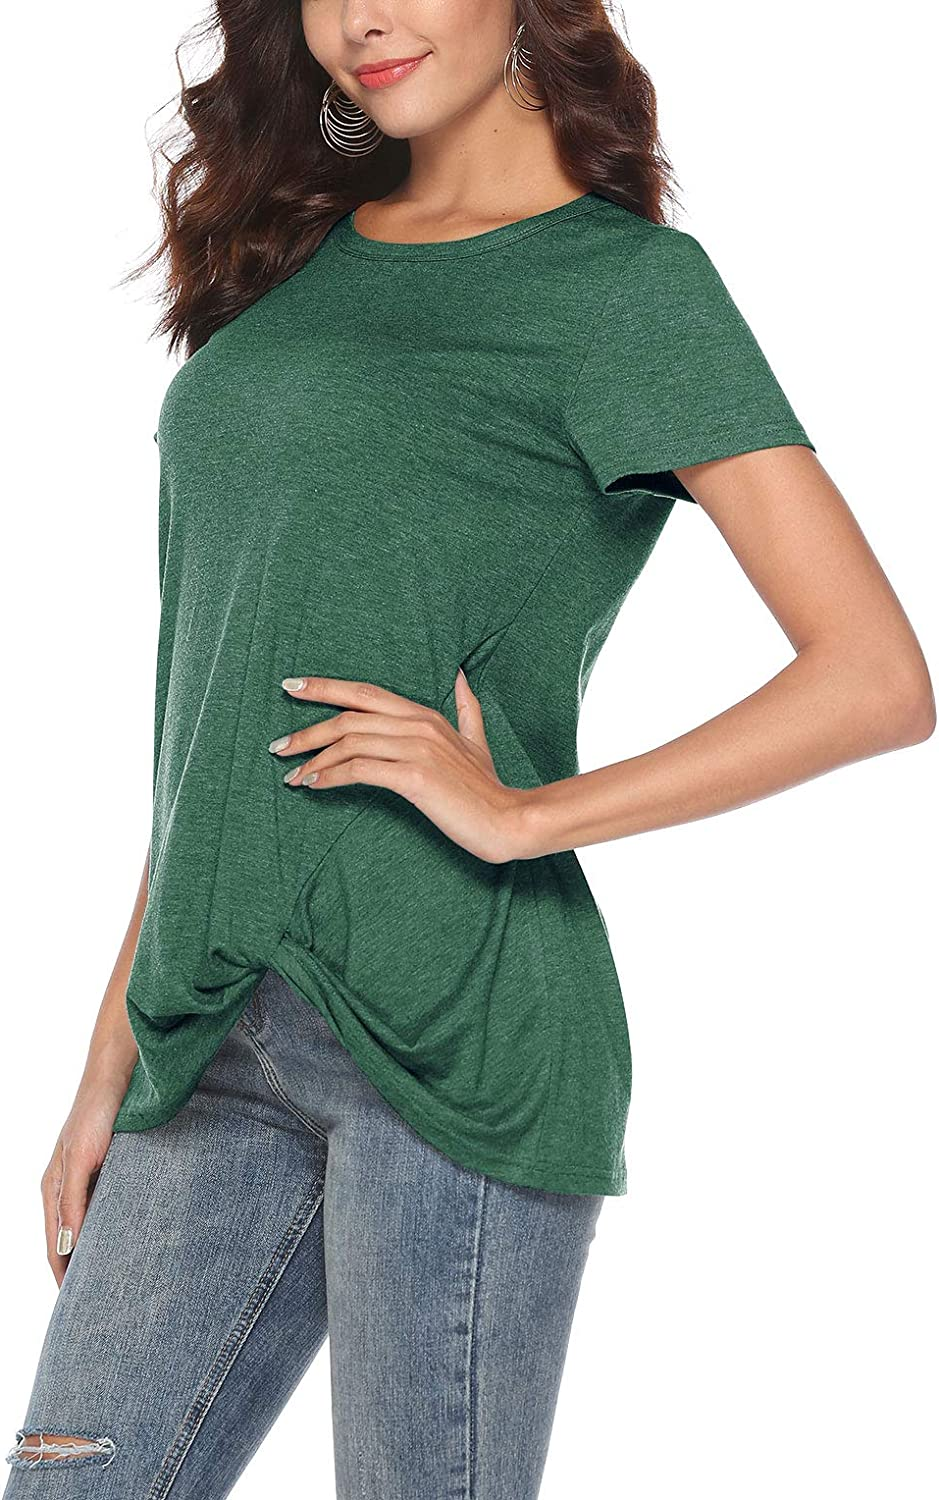 Womens Casual Short Sleeve Solid T Shirts Twist Knot Tunics Tops Blouses